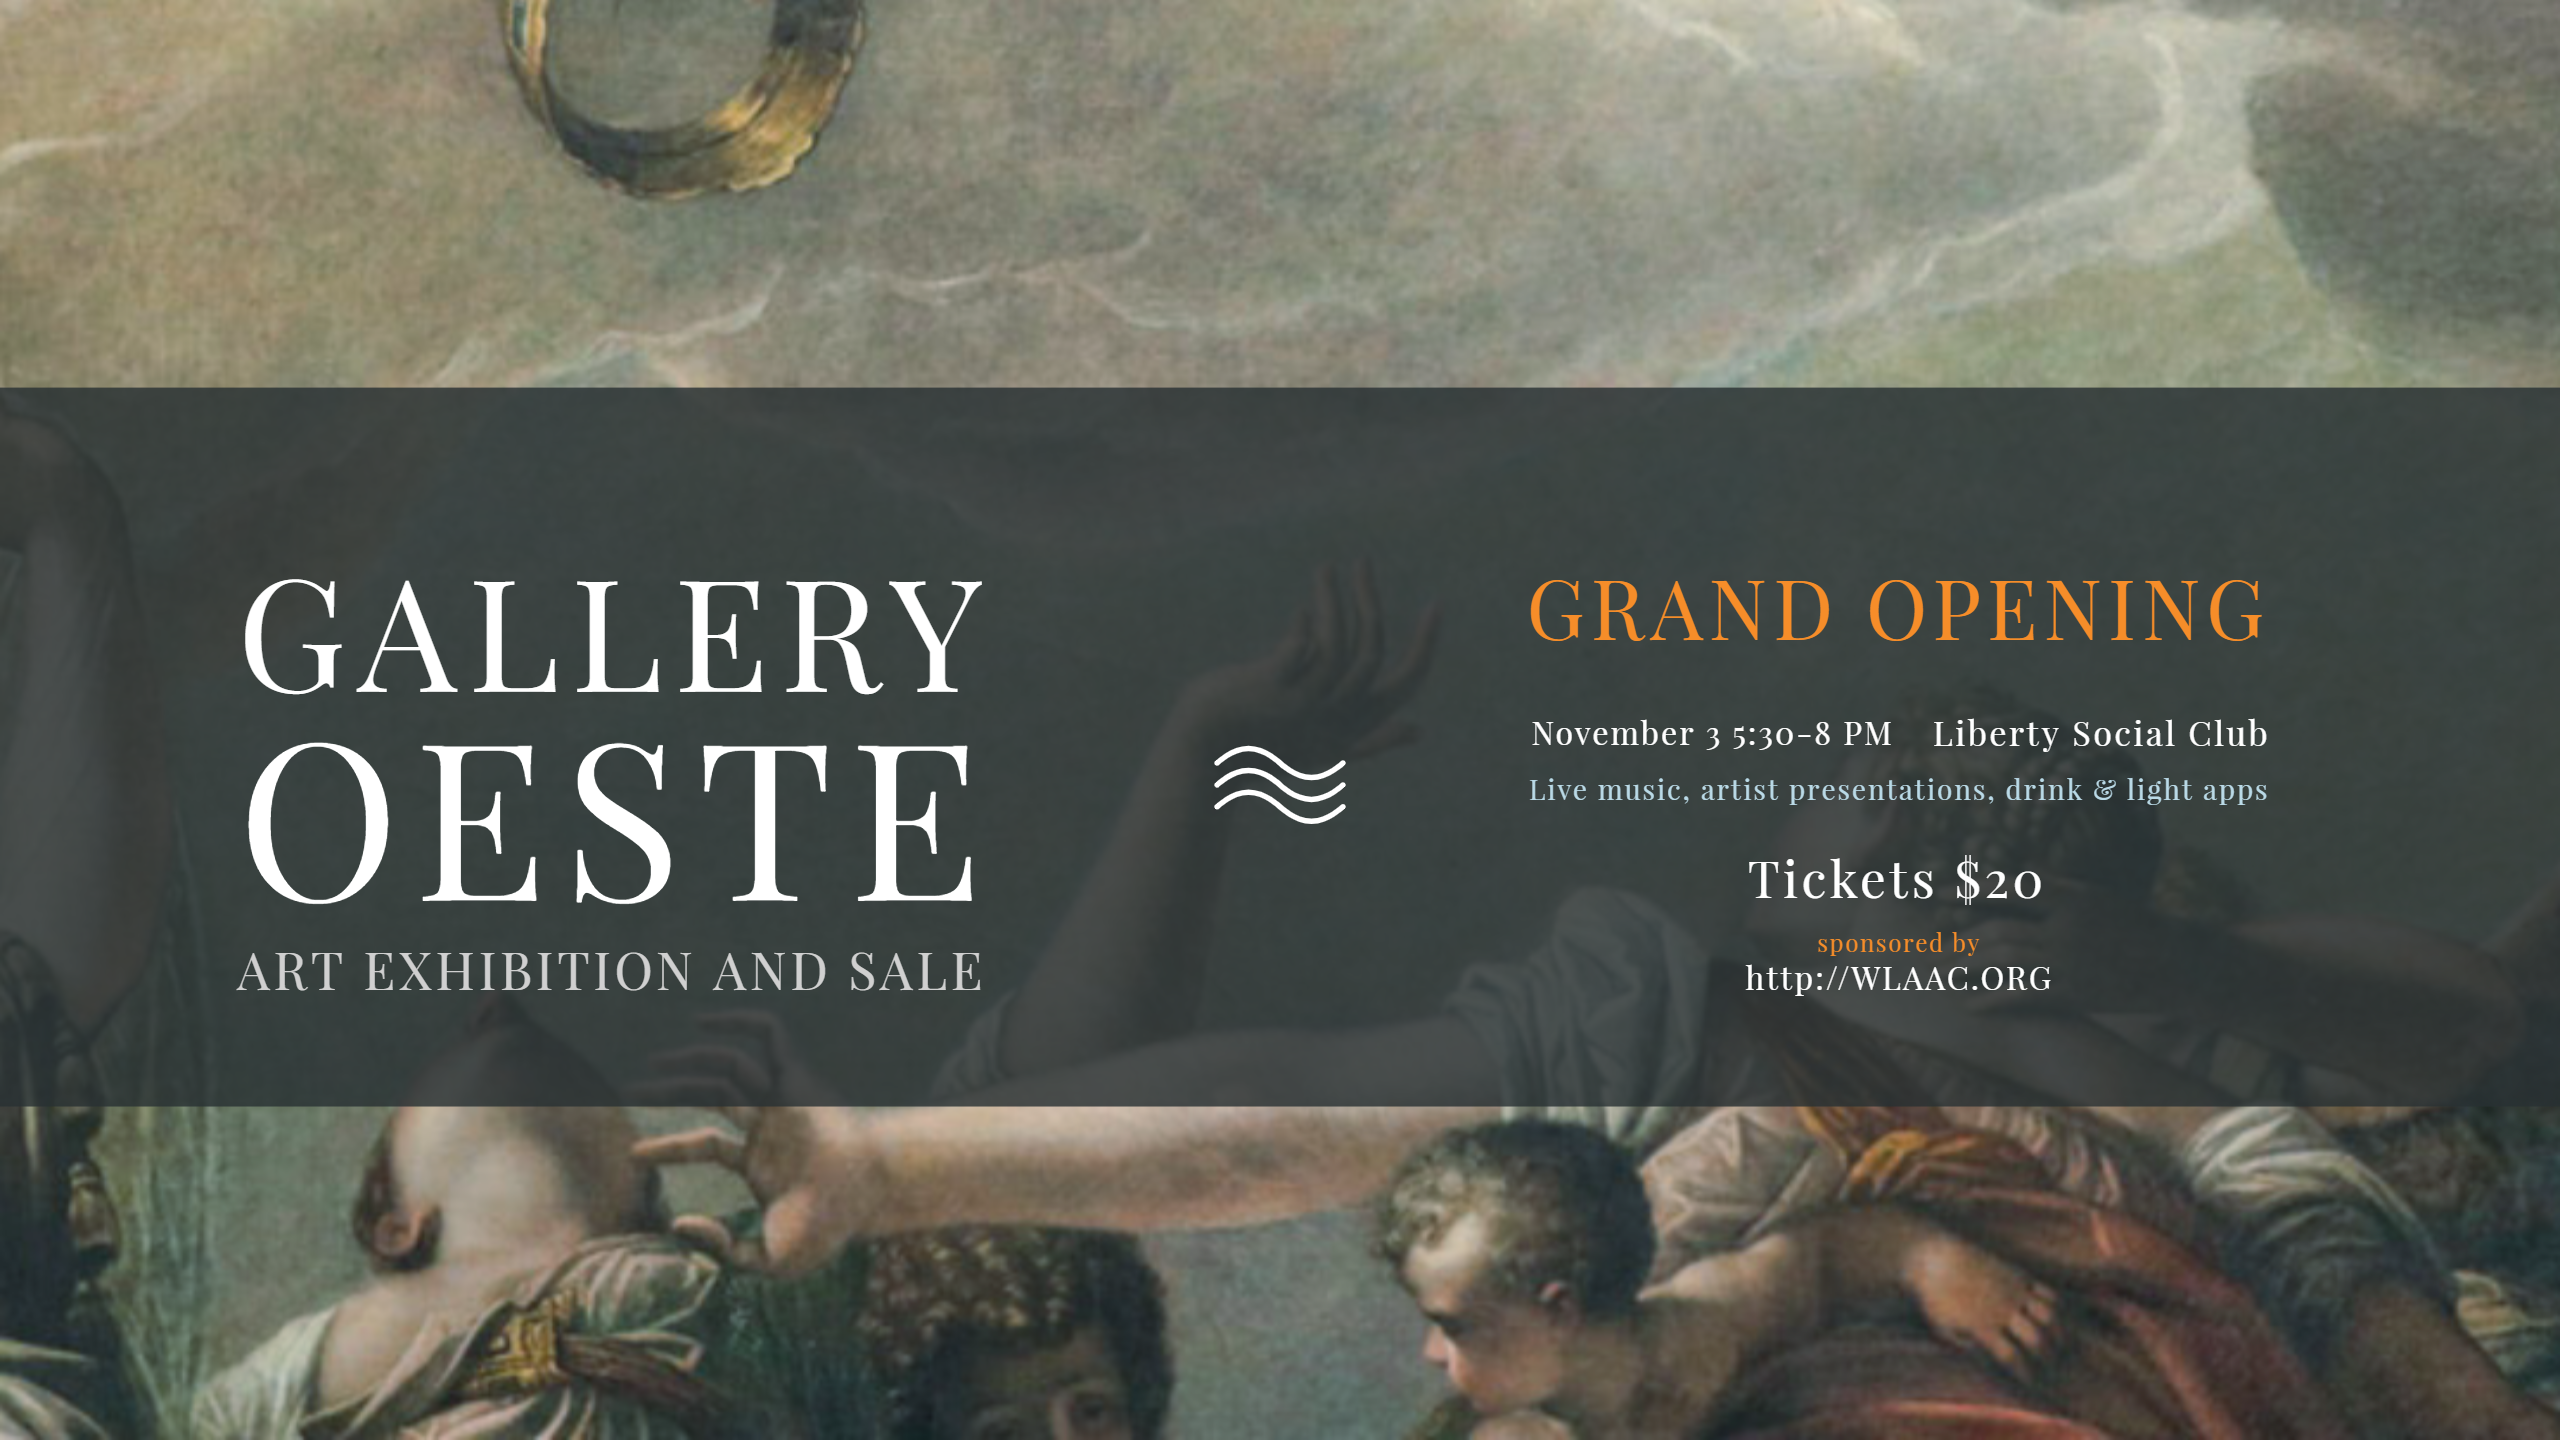 Gallery Oeste Grand Opening